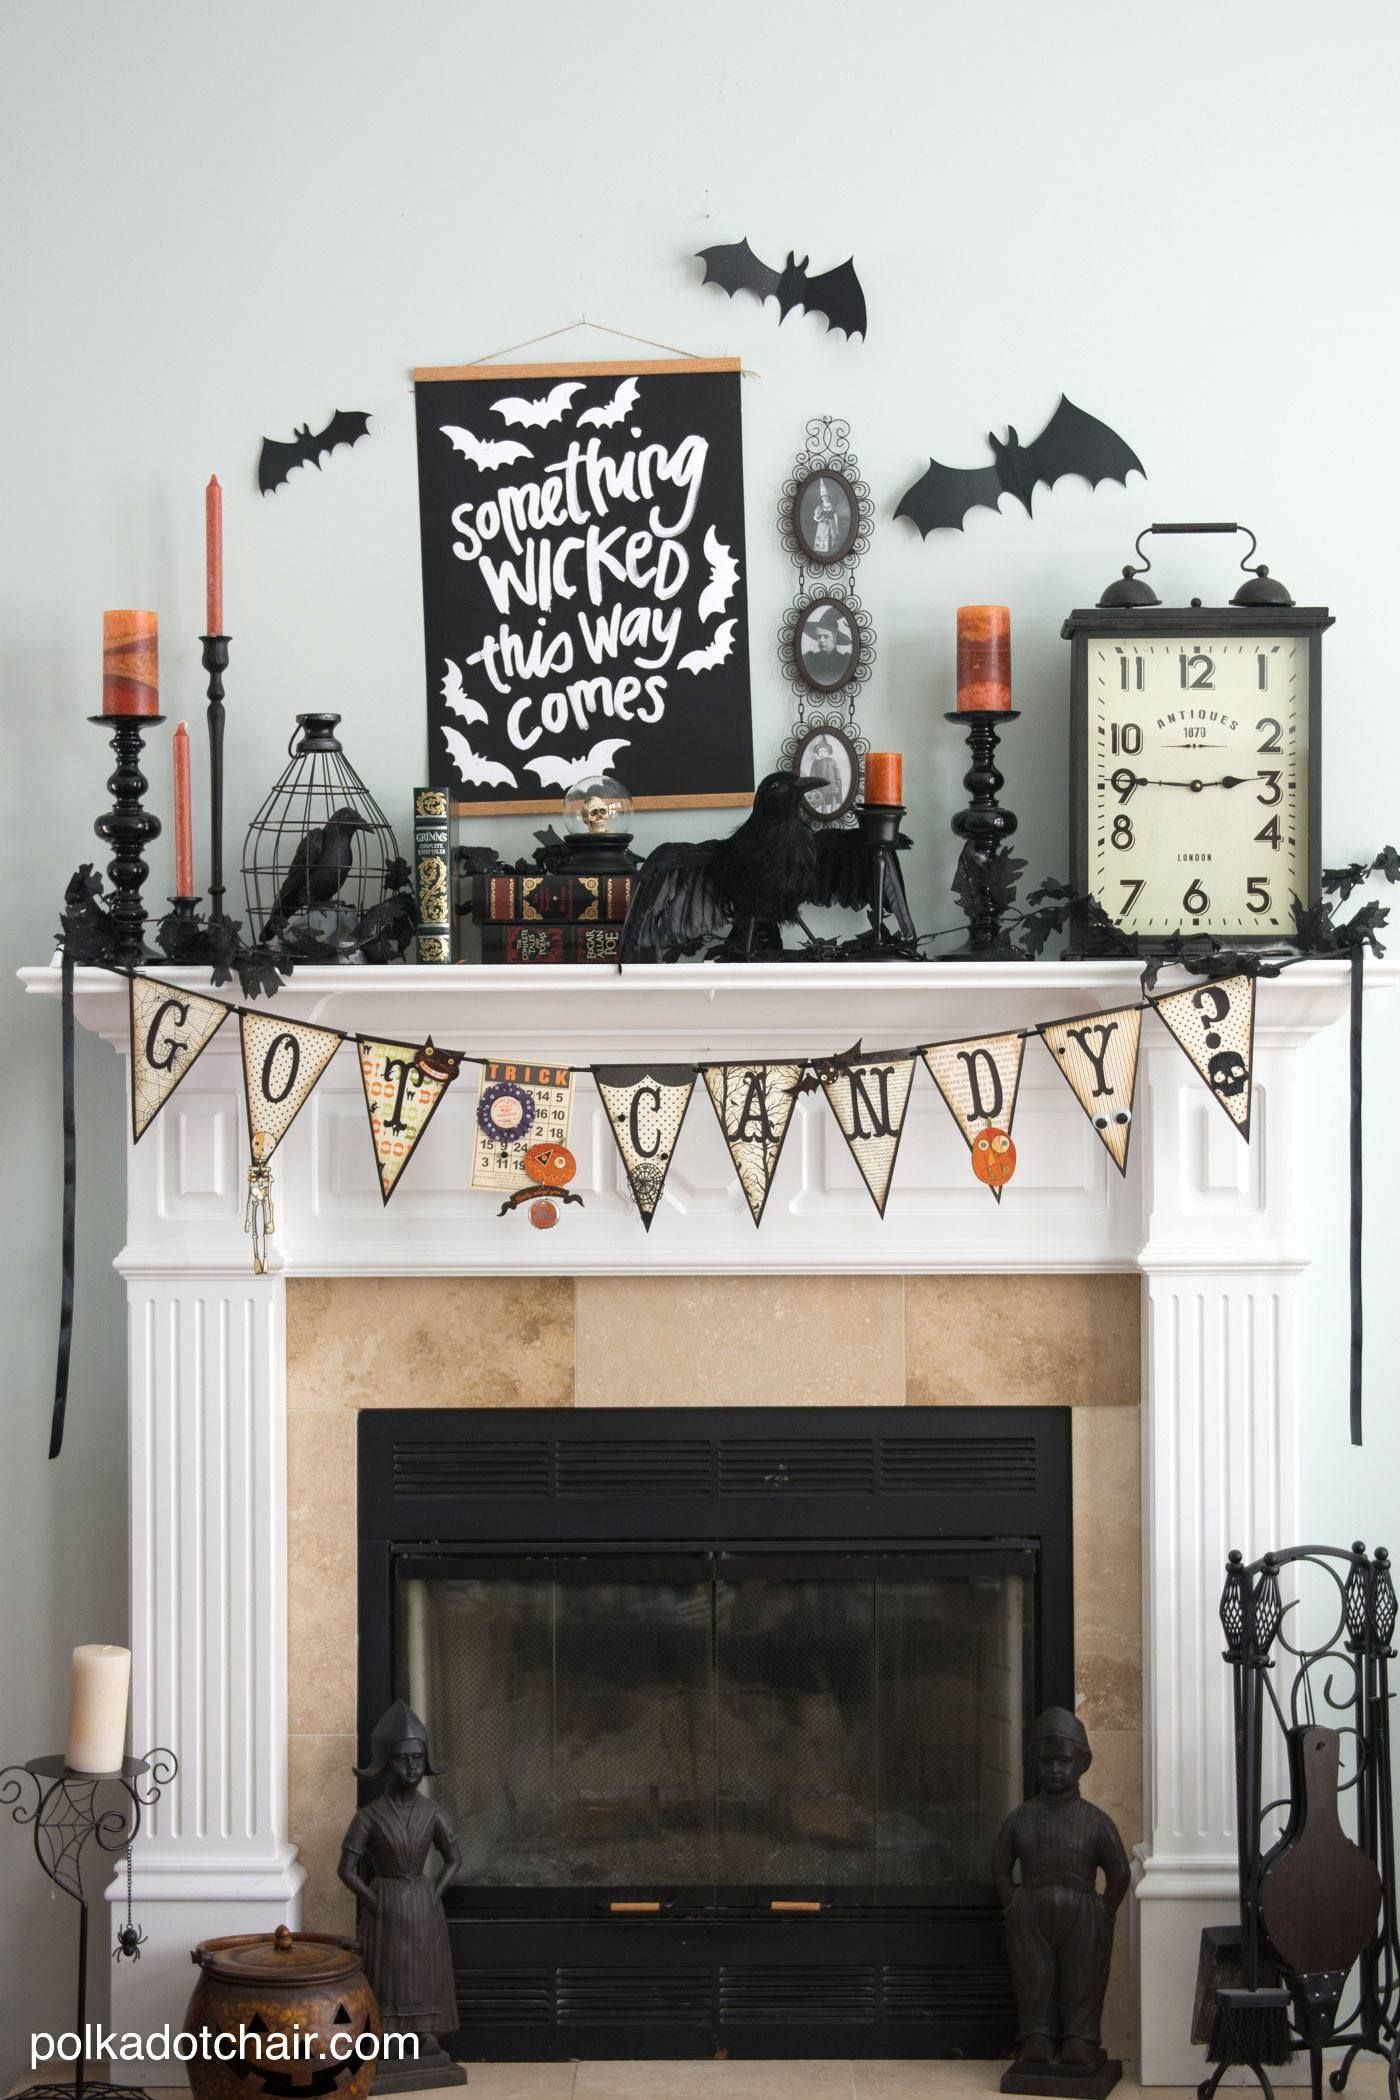 20 Creative Halloween Decorating Ideas Pinterest Mantle ideas - Kid Friendly Halloween Decorations